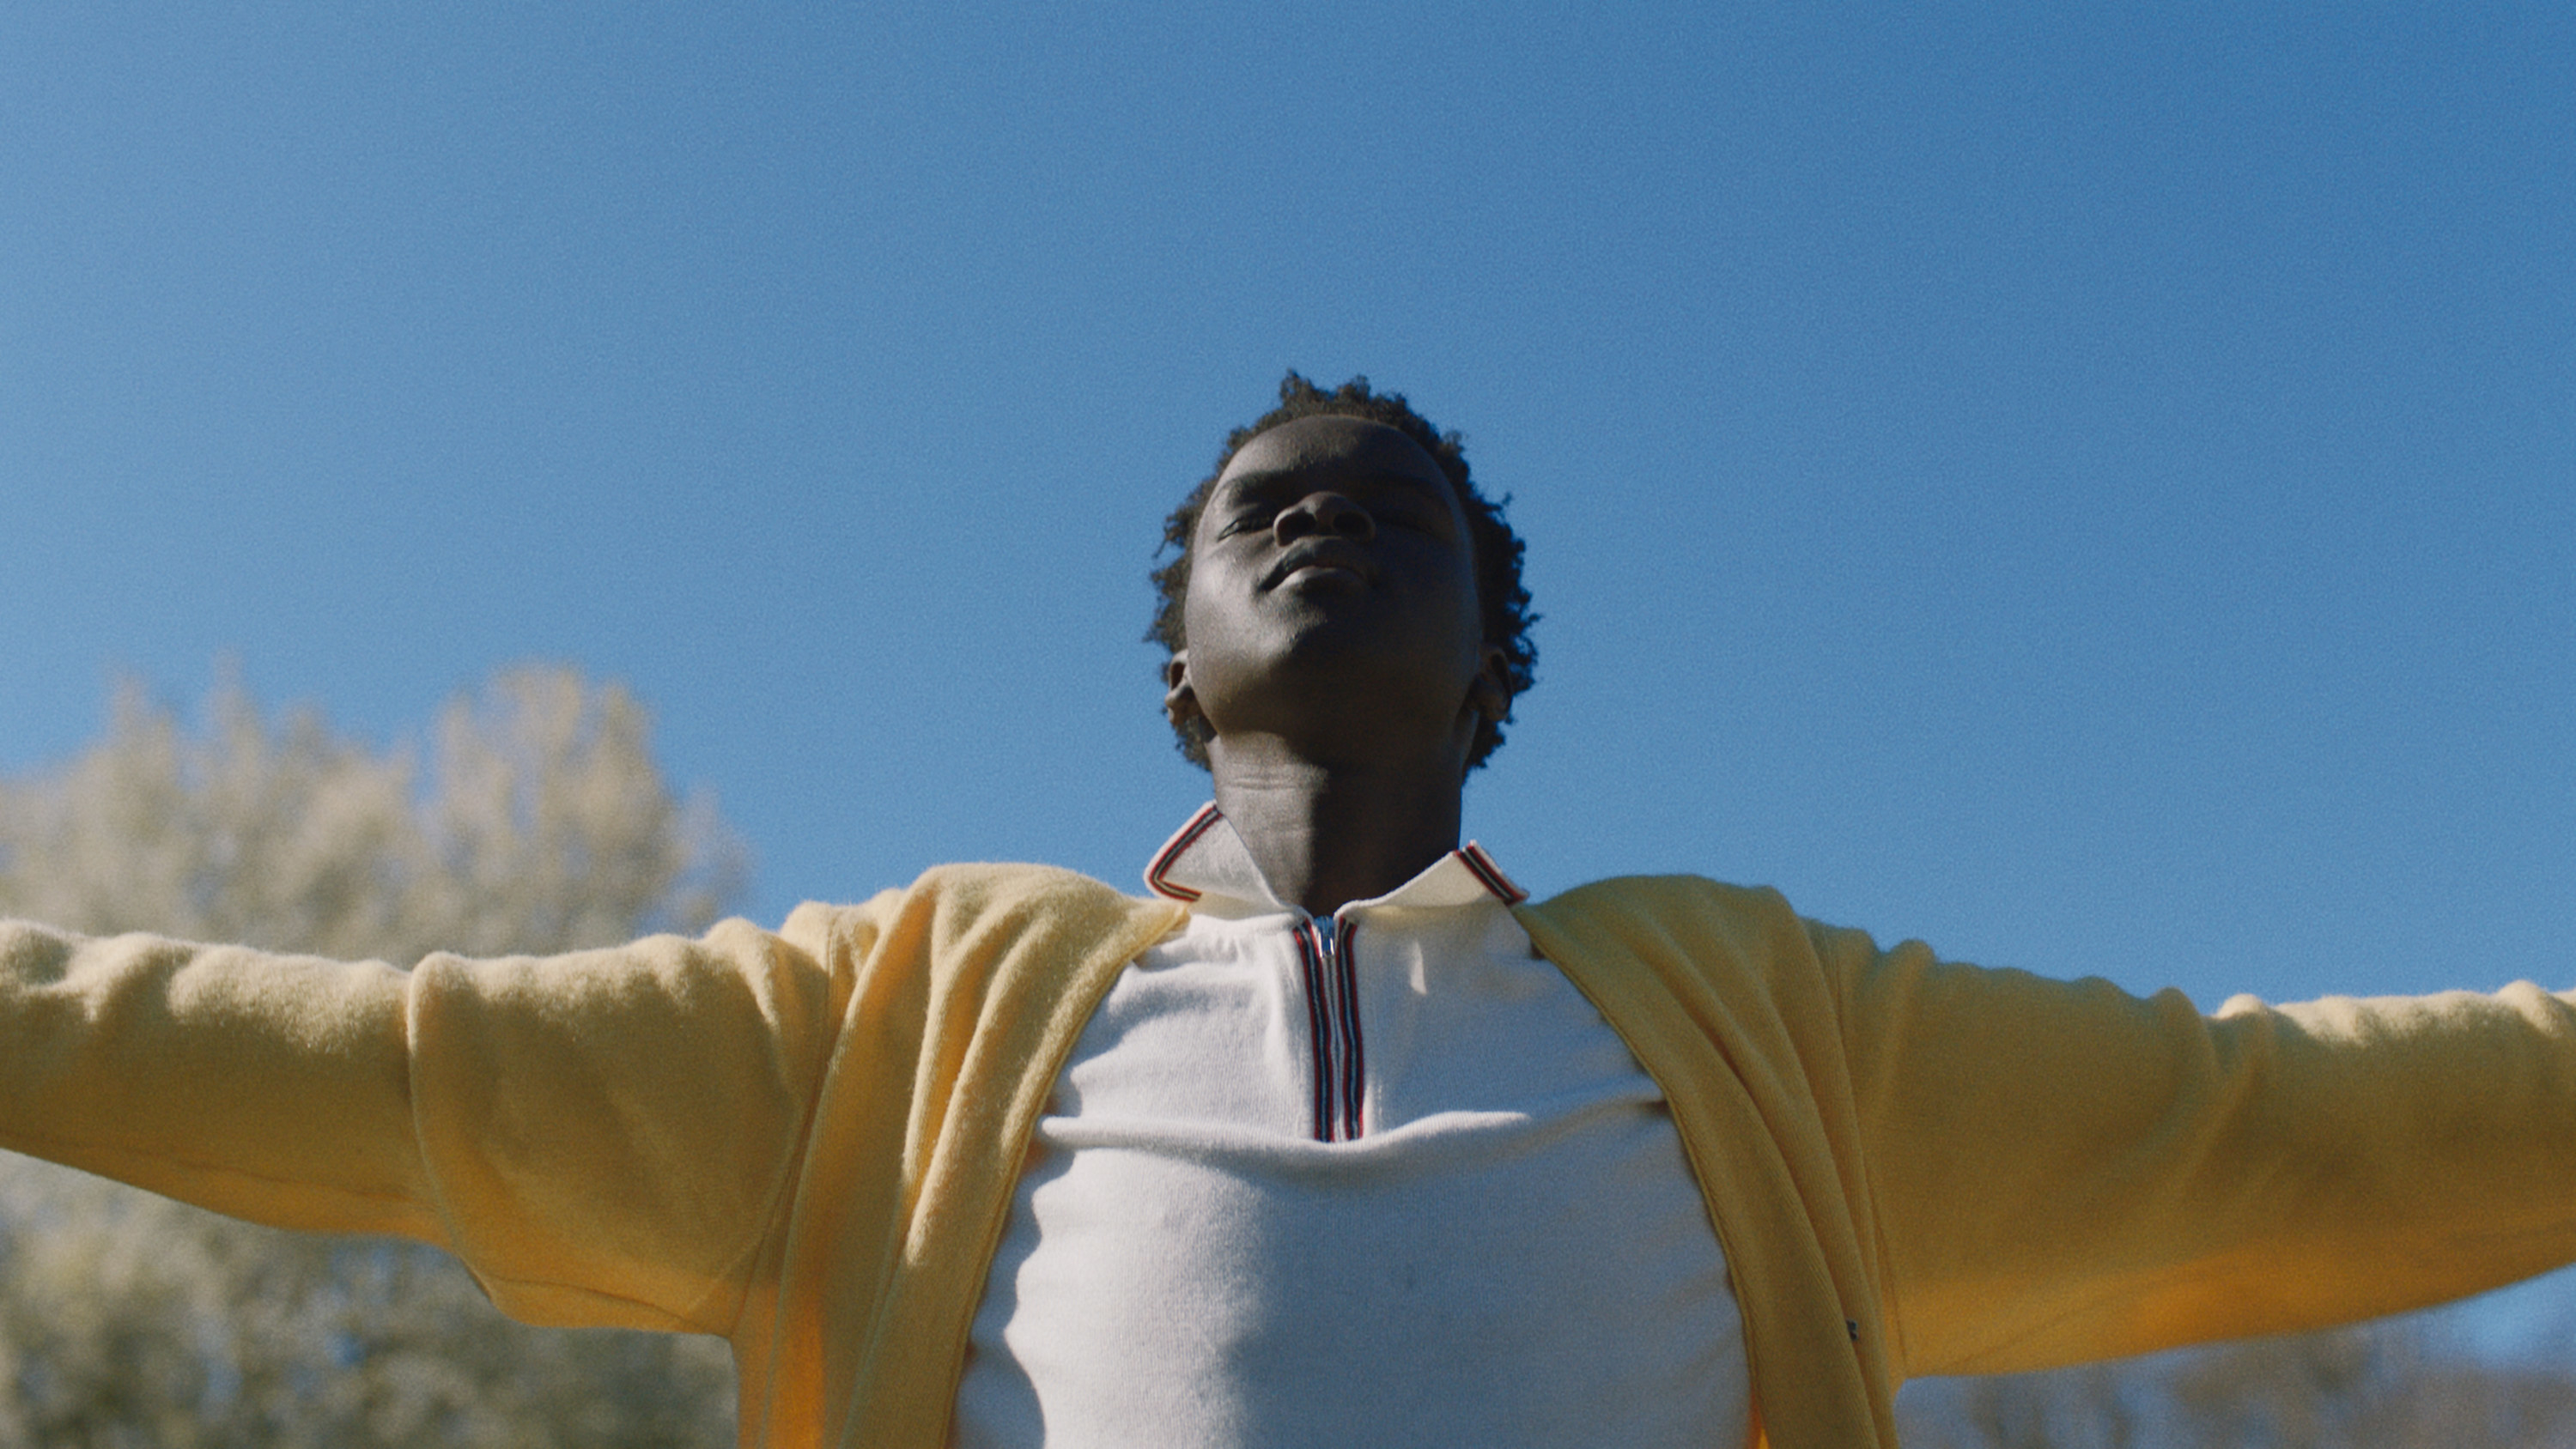 A young man with arms spread wide raises his face to the sun with his eyes closed